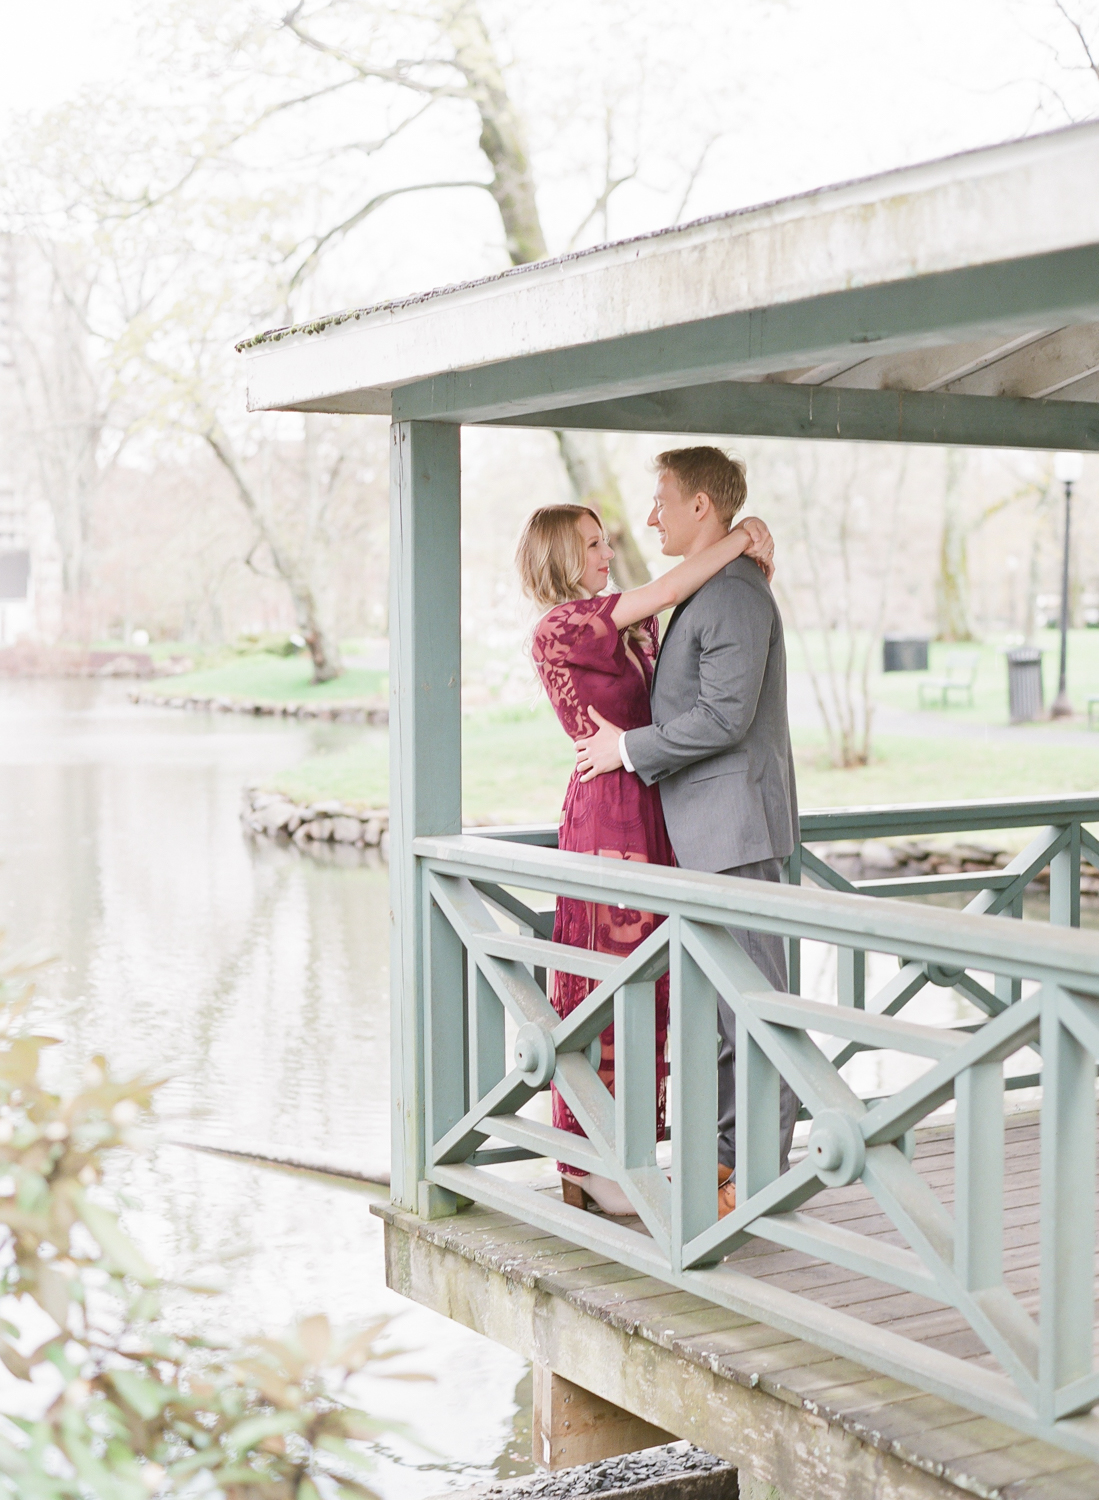 Jacqueline Anne Photography - Amanda and Brent-71.jpg